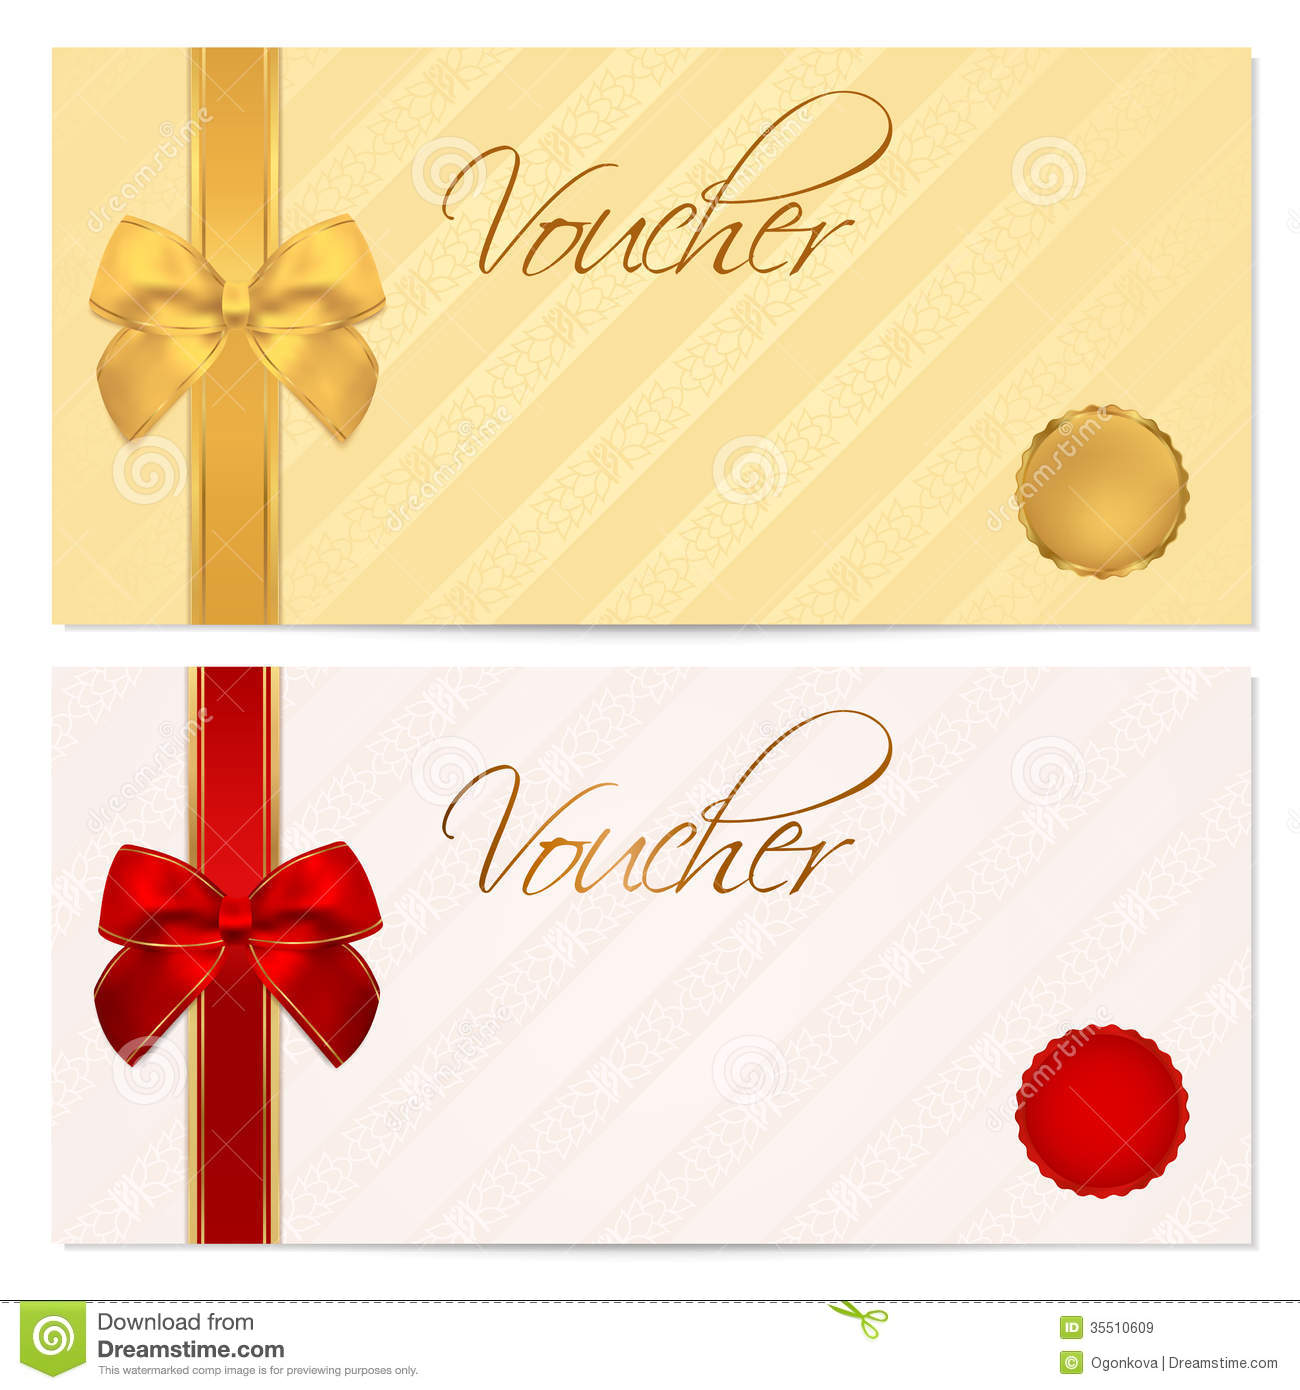 Doc716334 Create Gift Certificate Online Free Free Online – Create a Voucher Template